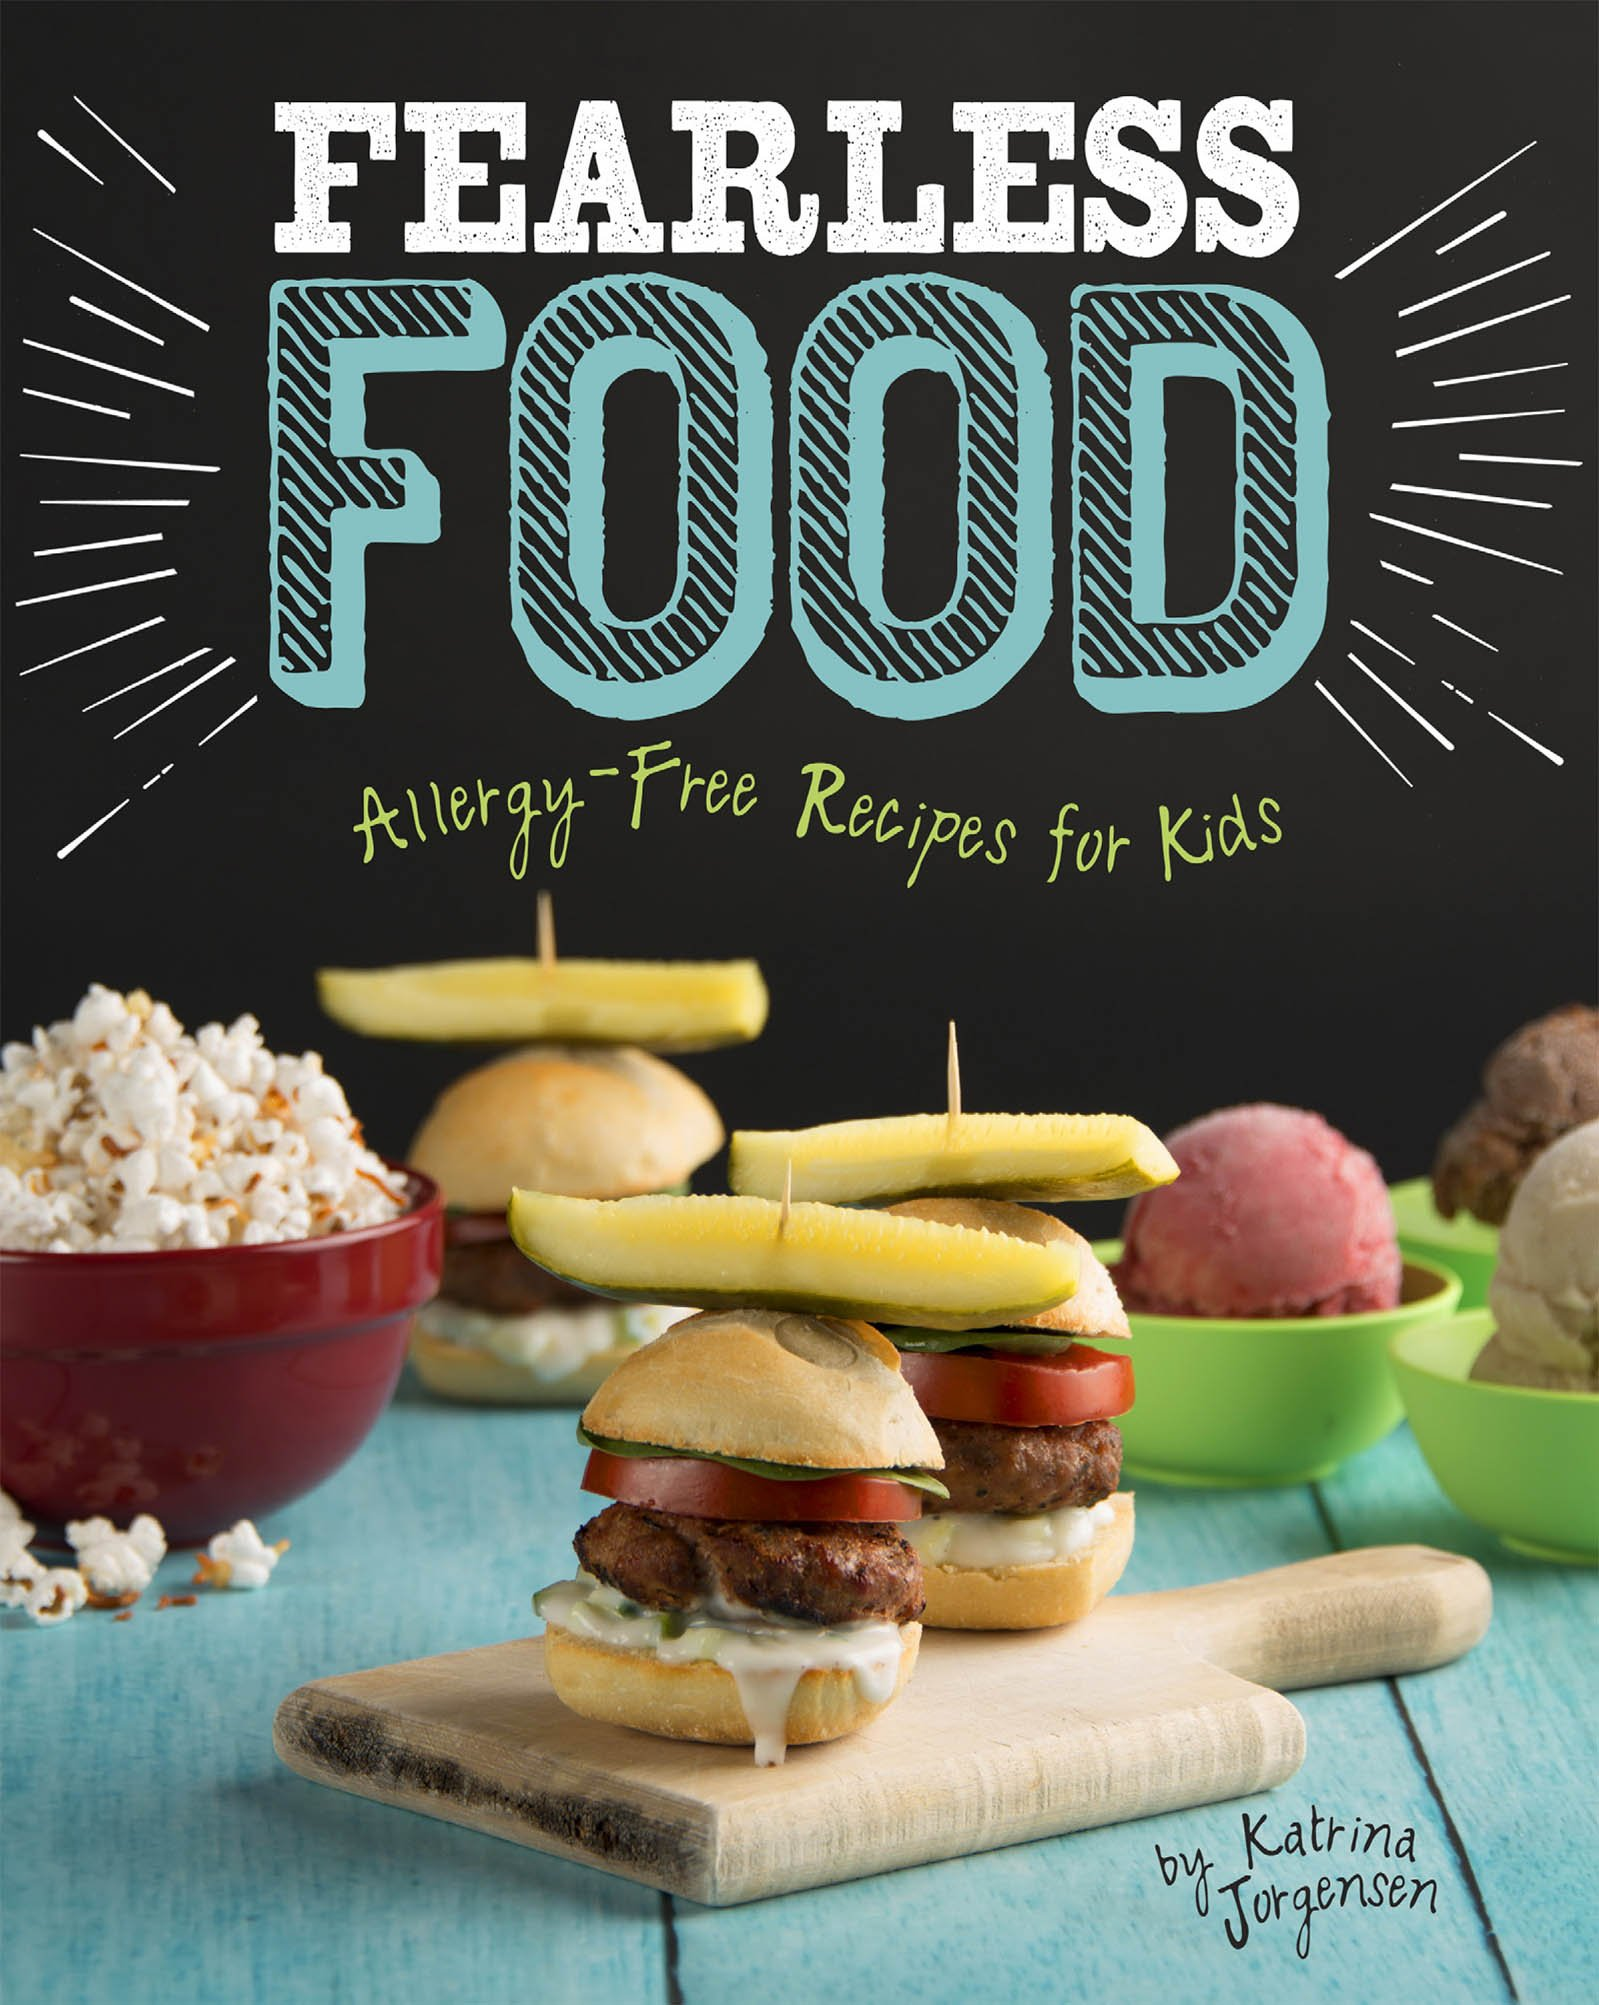 Fearless food allergy free recipes for kids allergy aware fearless food allergy free recipes for kids allergy aware cookbooks katrina jorgensen 9781623706081 amazon books forumfinder Image collections